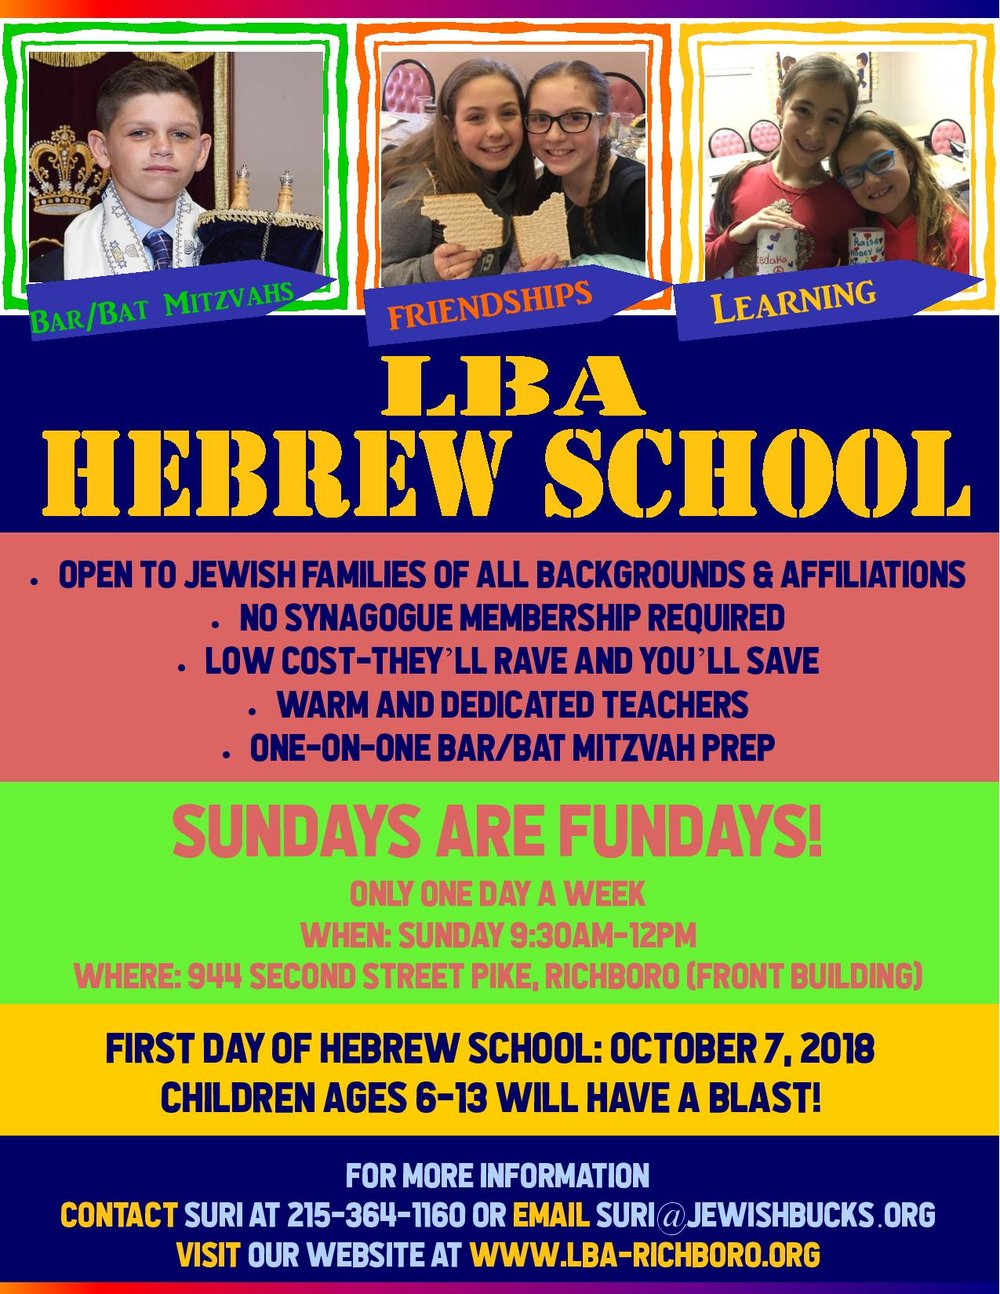 lba hebrew school flyer 9-page-001.jpg